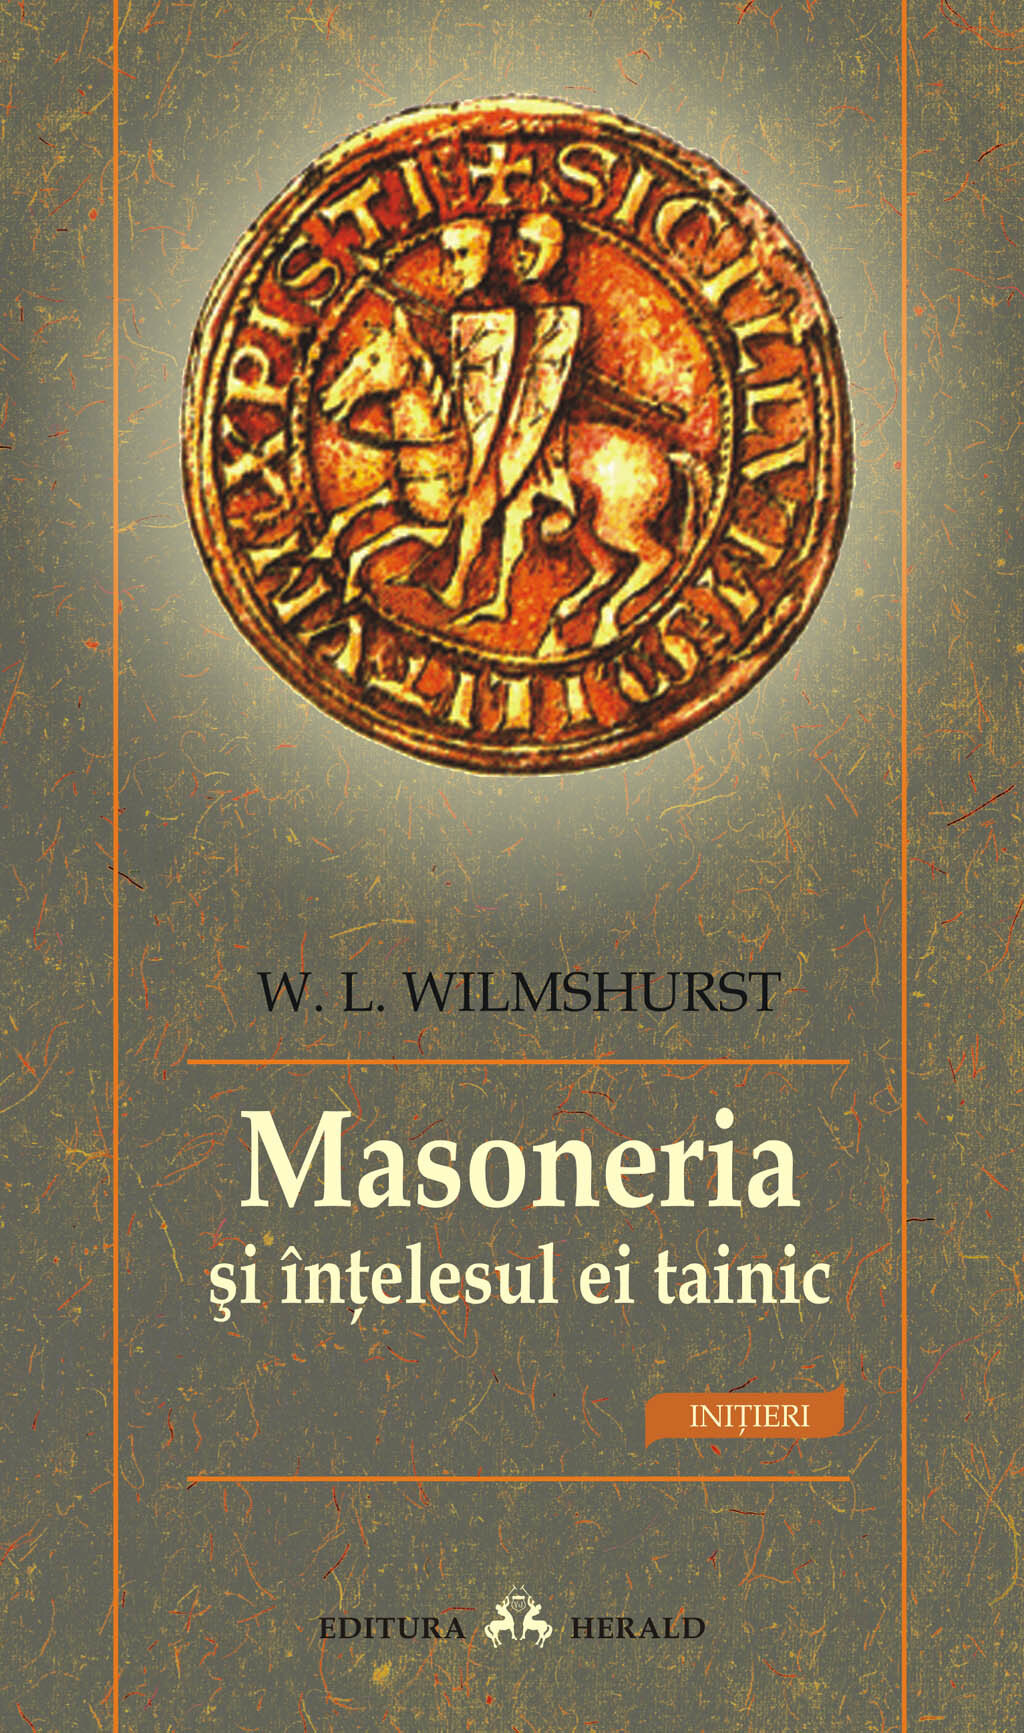 Masoneria si intelesul ei tainic (eBook)